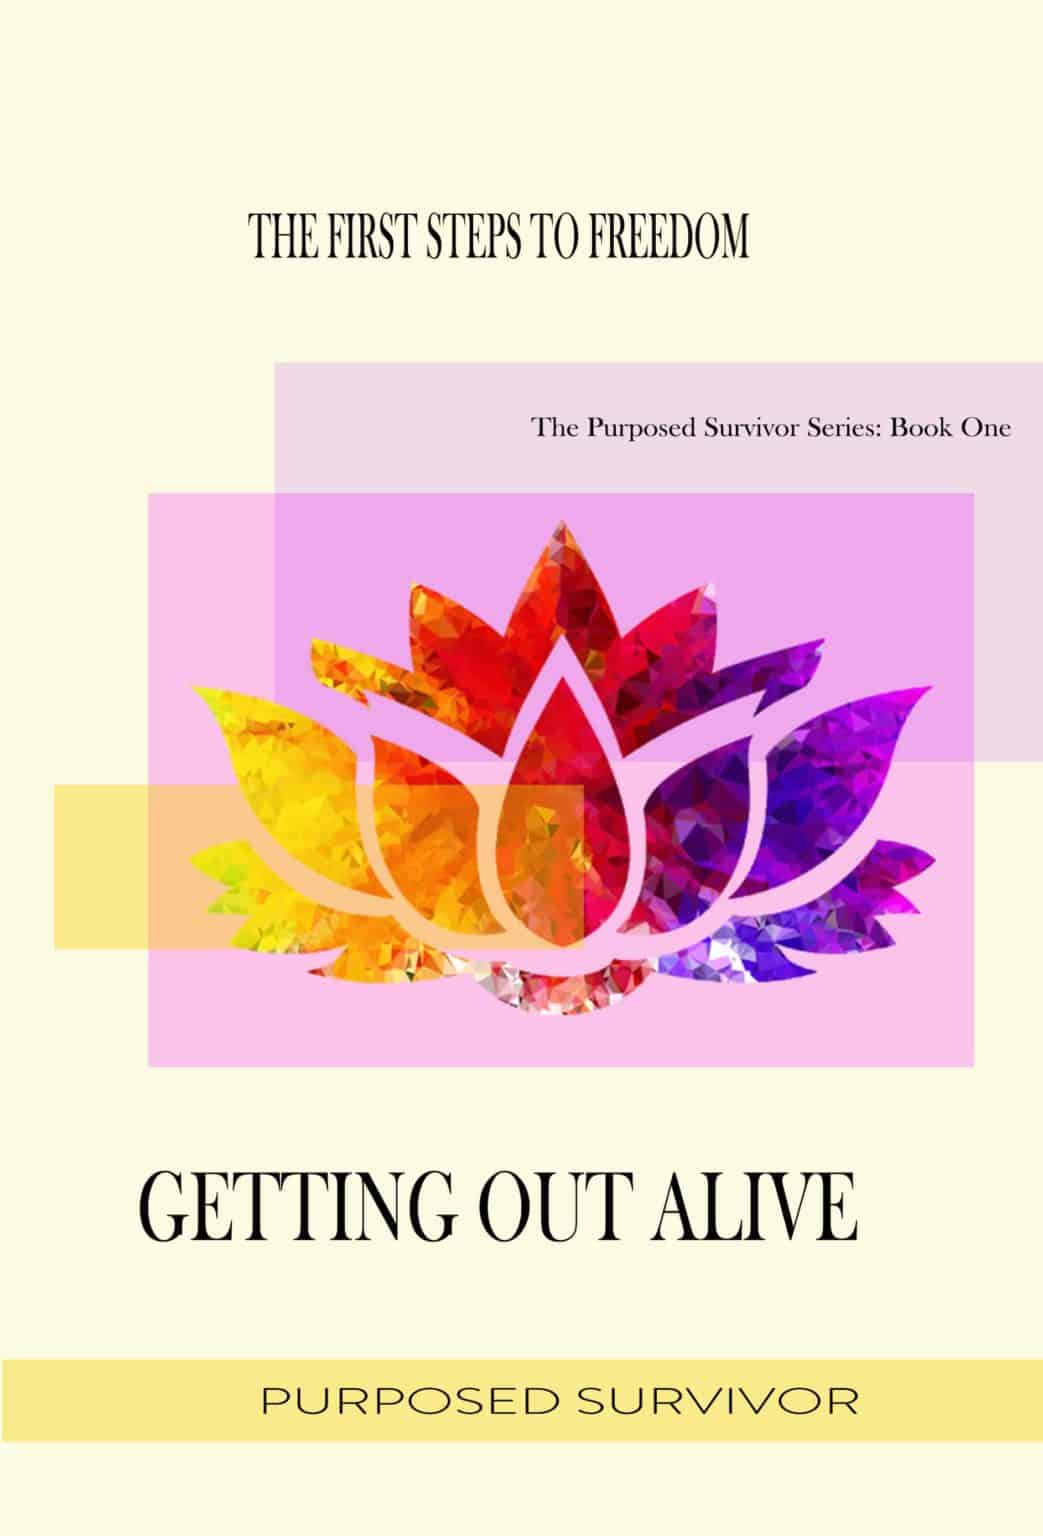 Getting Out Alive - Purposed Survivor 12 step program for domestic abuse